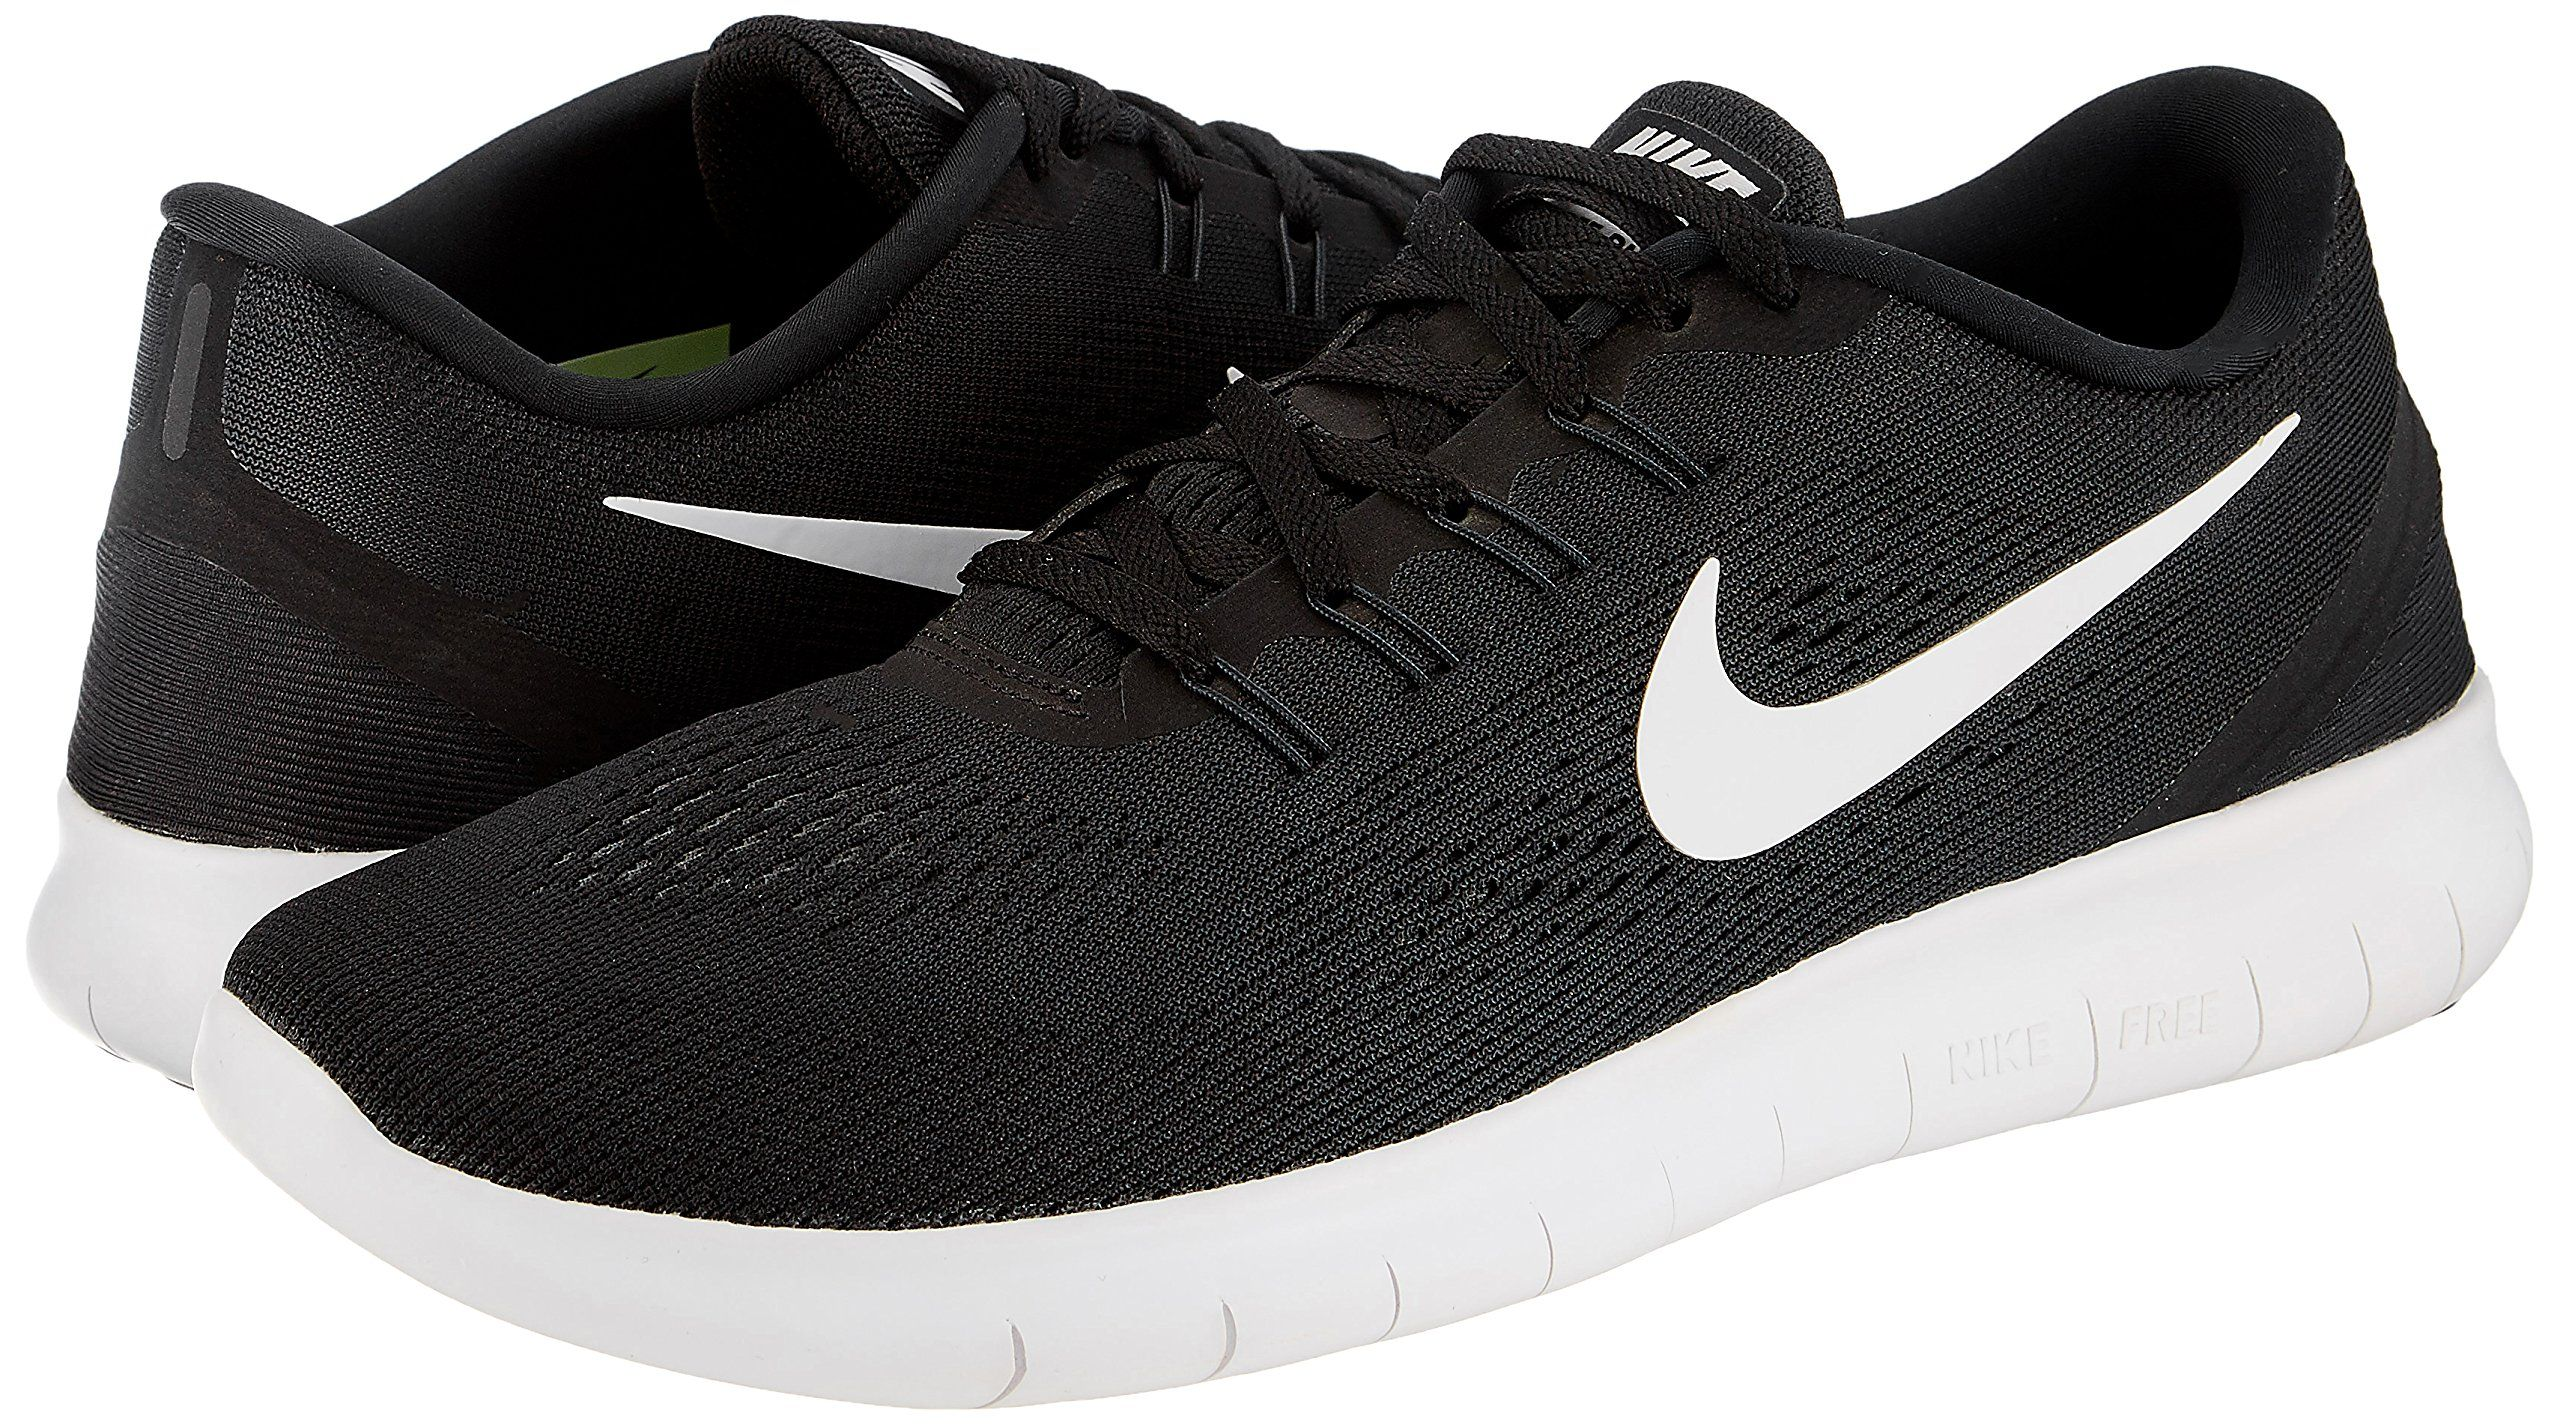 NIKE Mens Free RN Running Shoe Black Anthracite White Size 12 M US -- Find  out more about the great product at the image link.(It is Amazon affiliate  link) ... 6b4b2e154